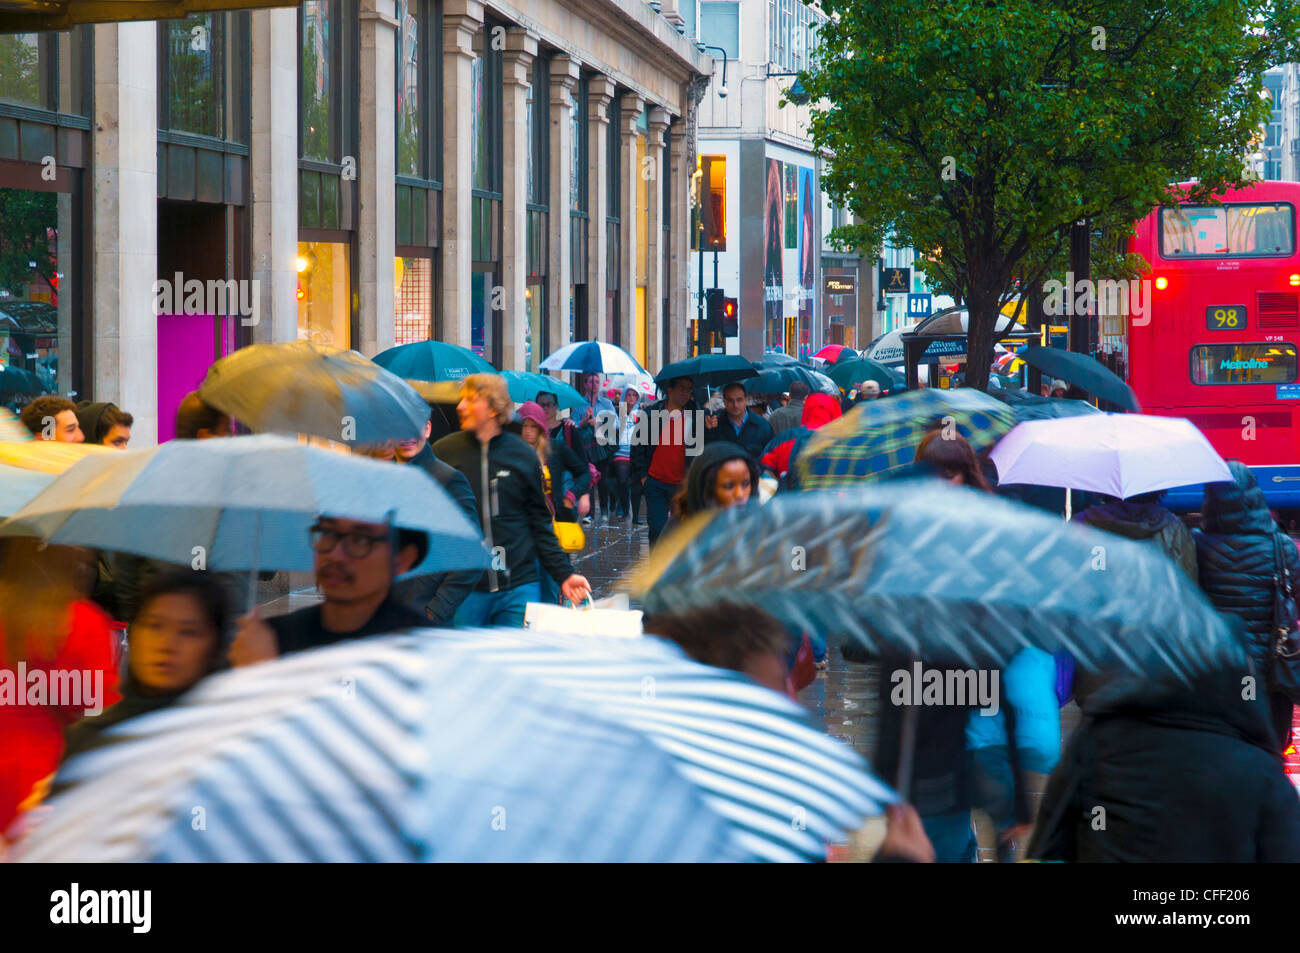 Shoppers in the rain, Oxford Street, London, England, United Kingdom, Europe - Stock Image